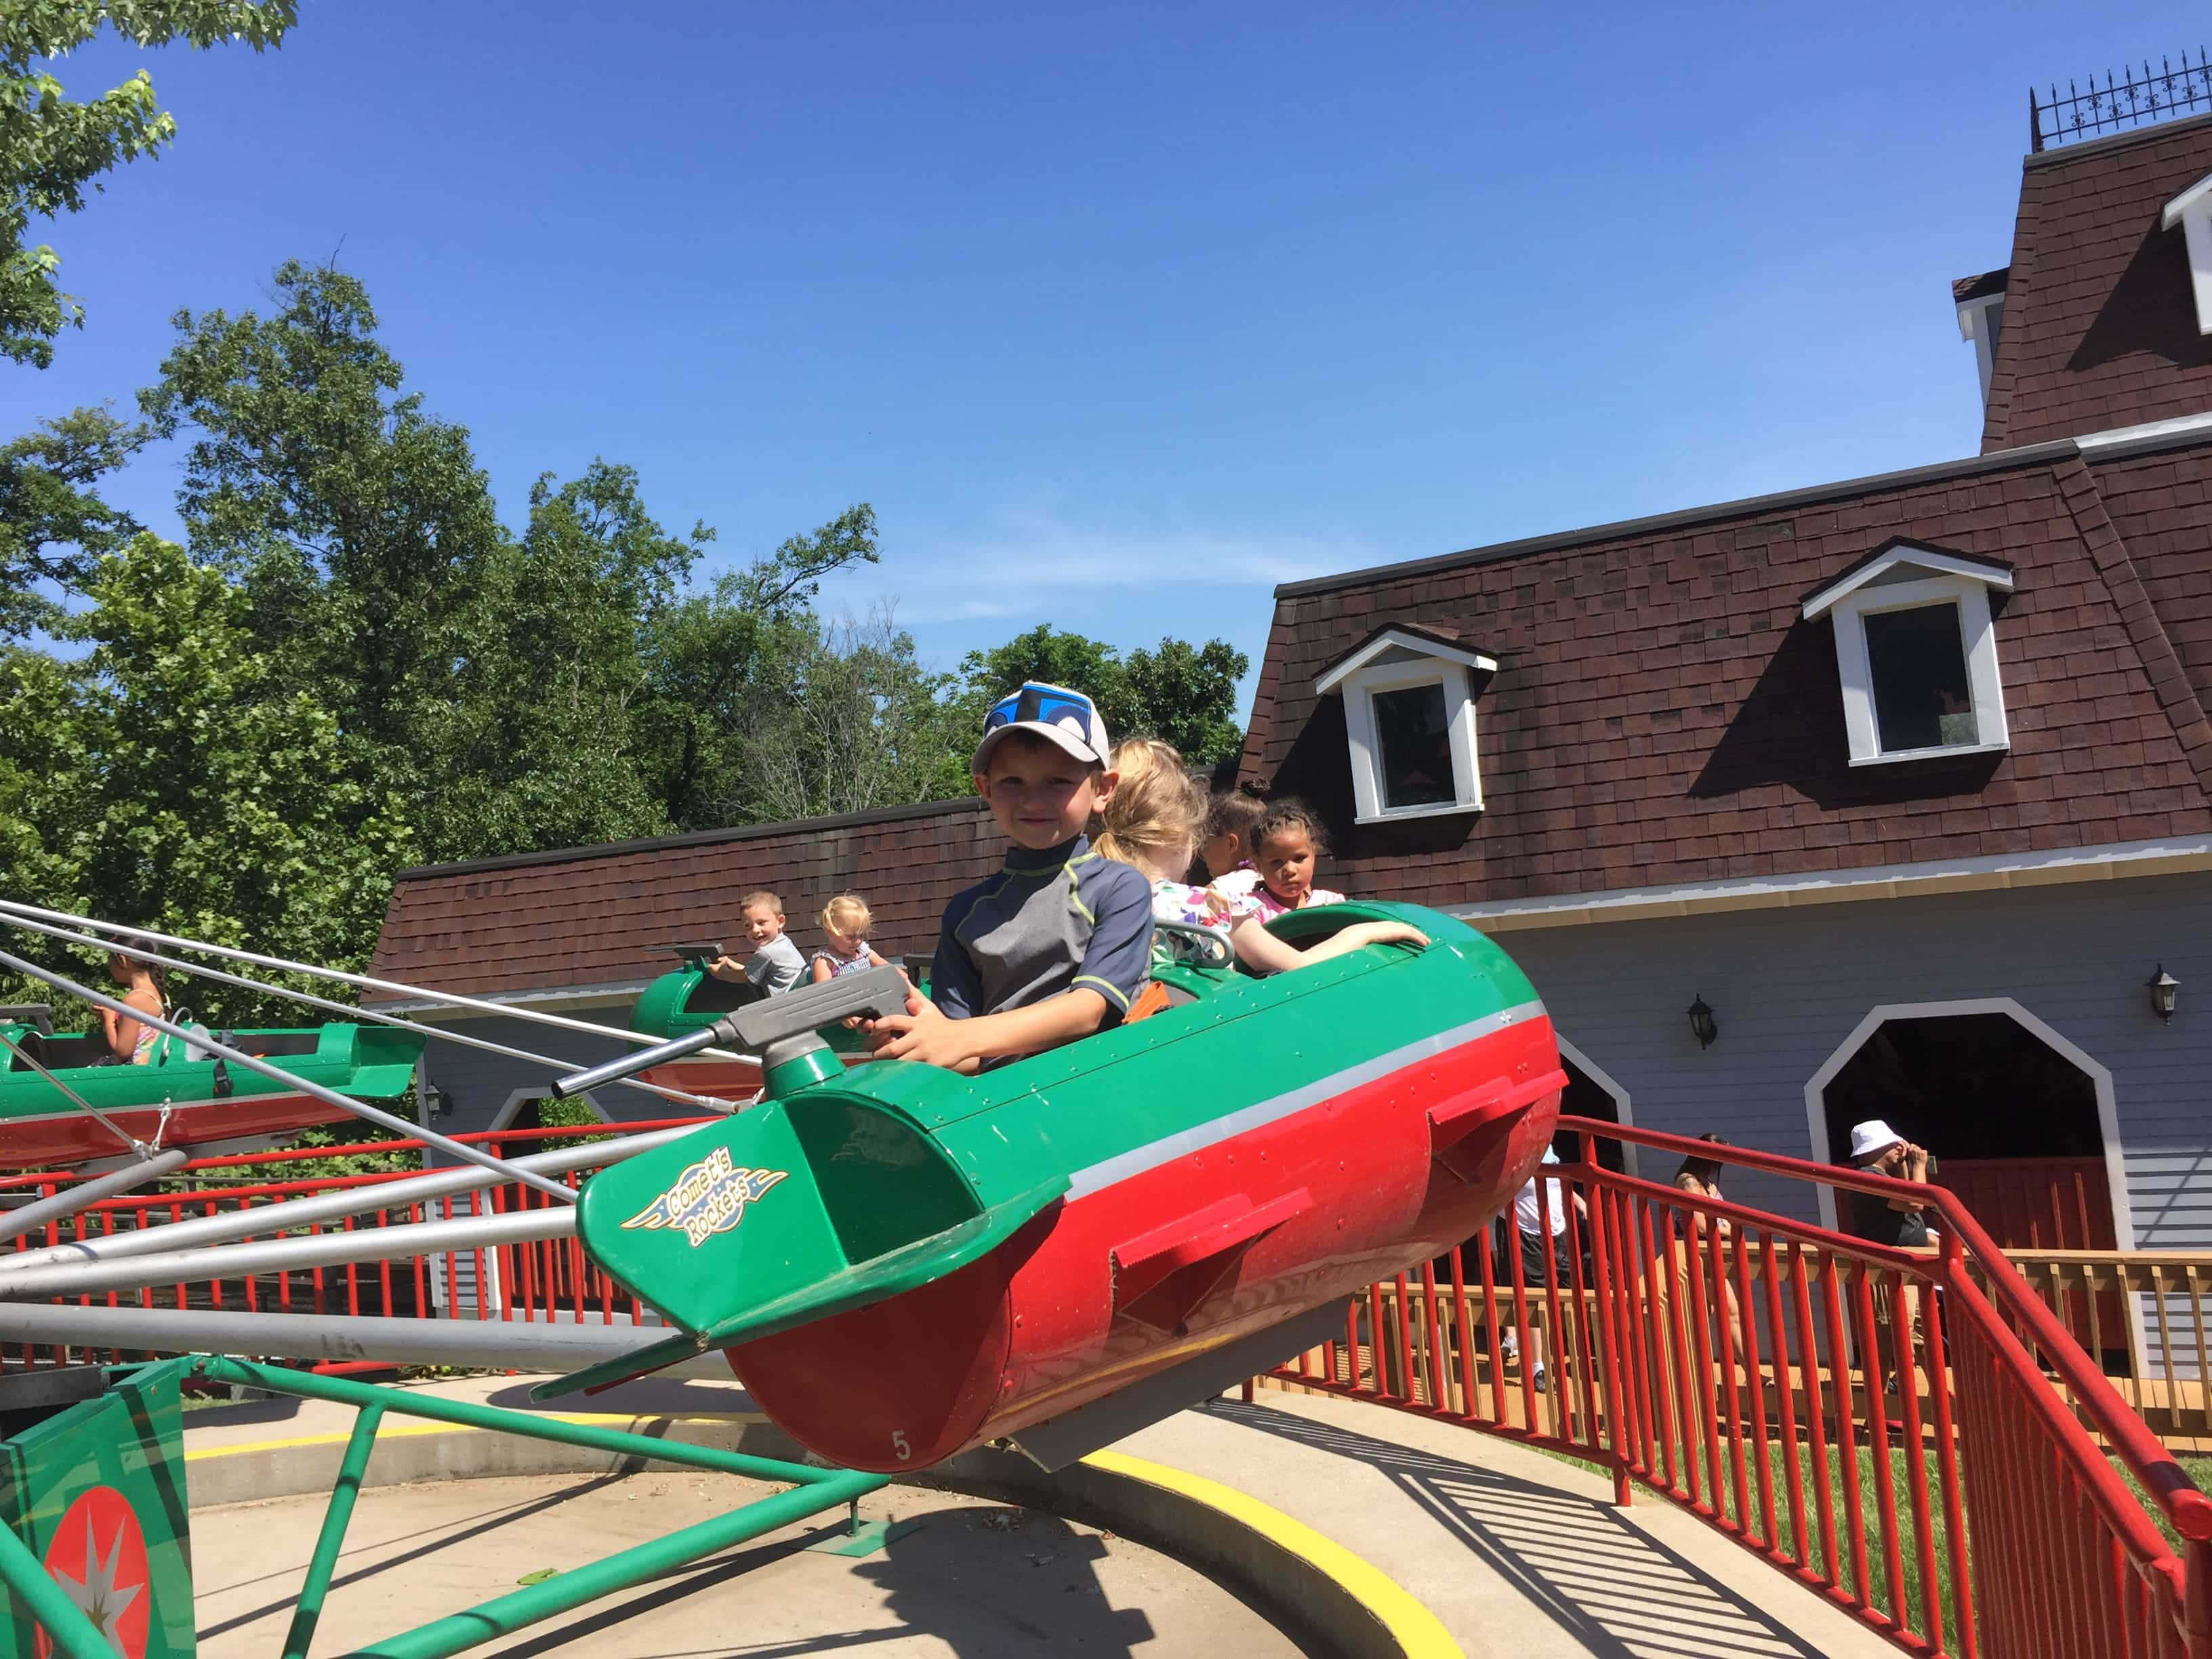 Holiday world plane ride